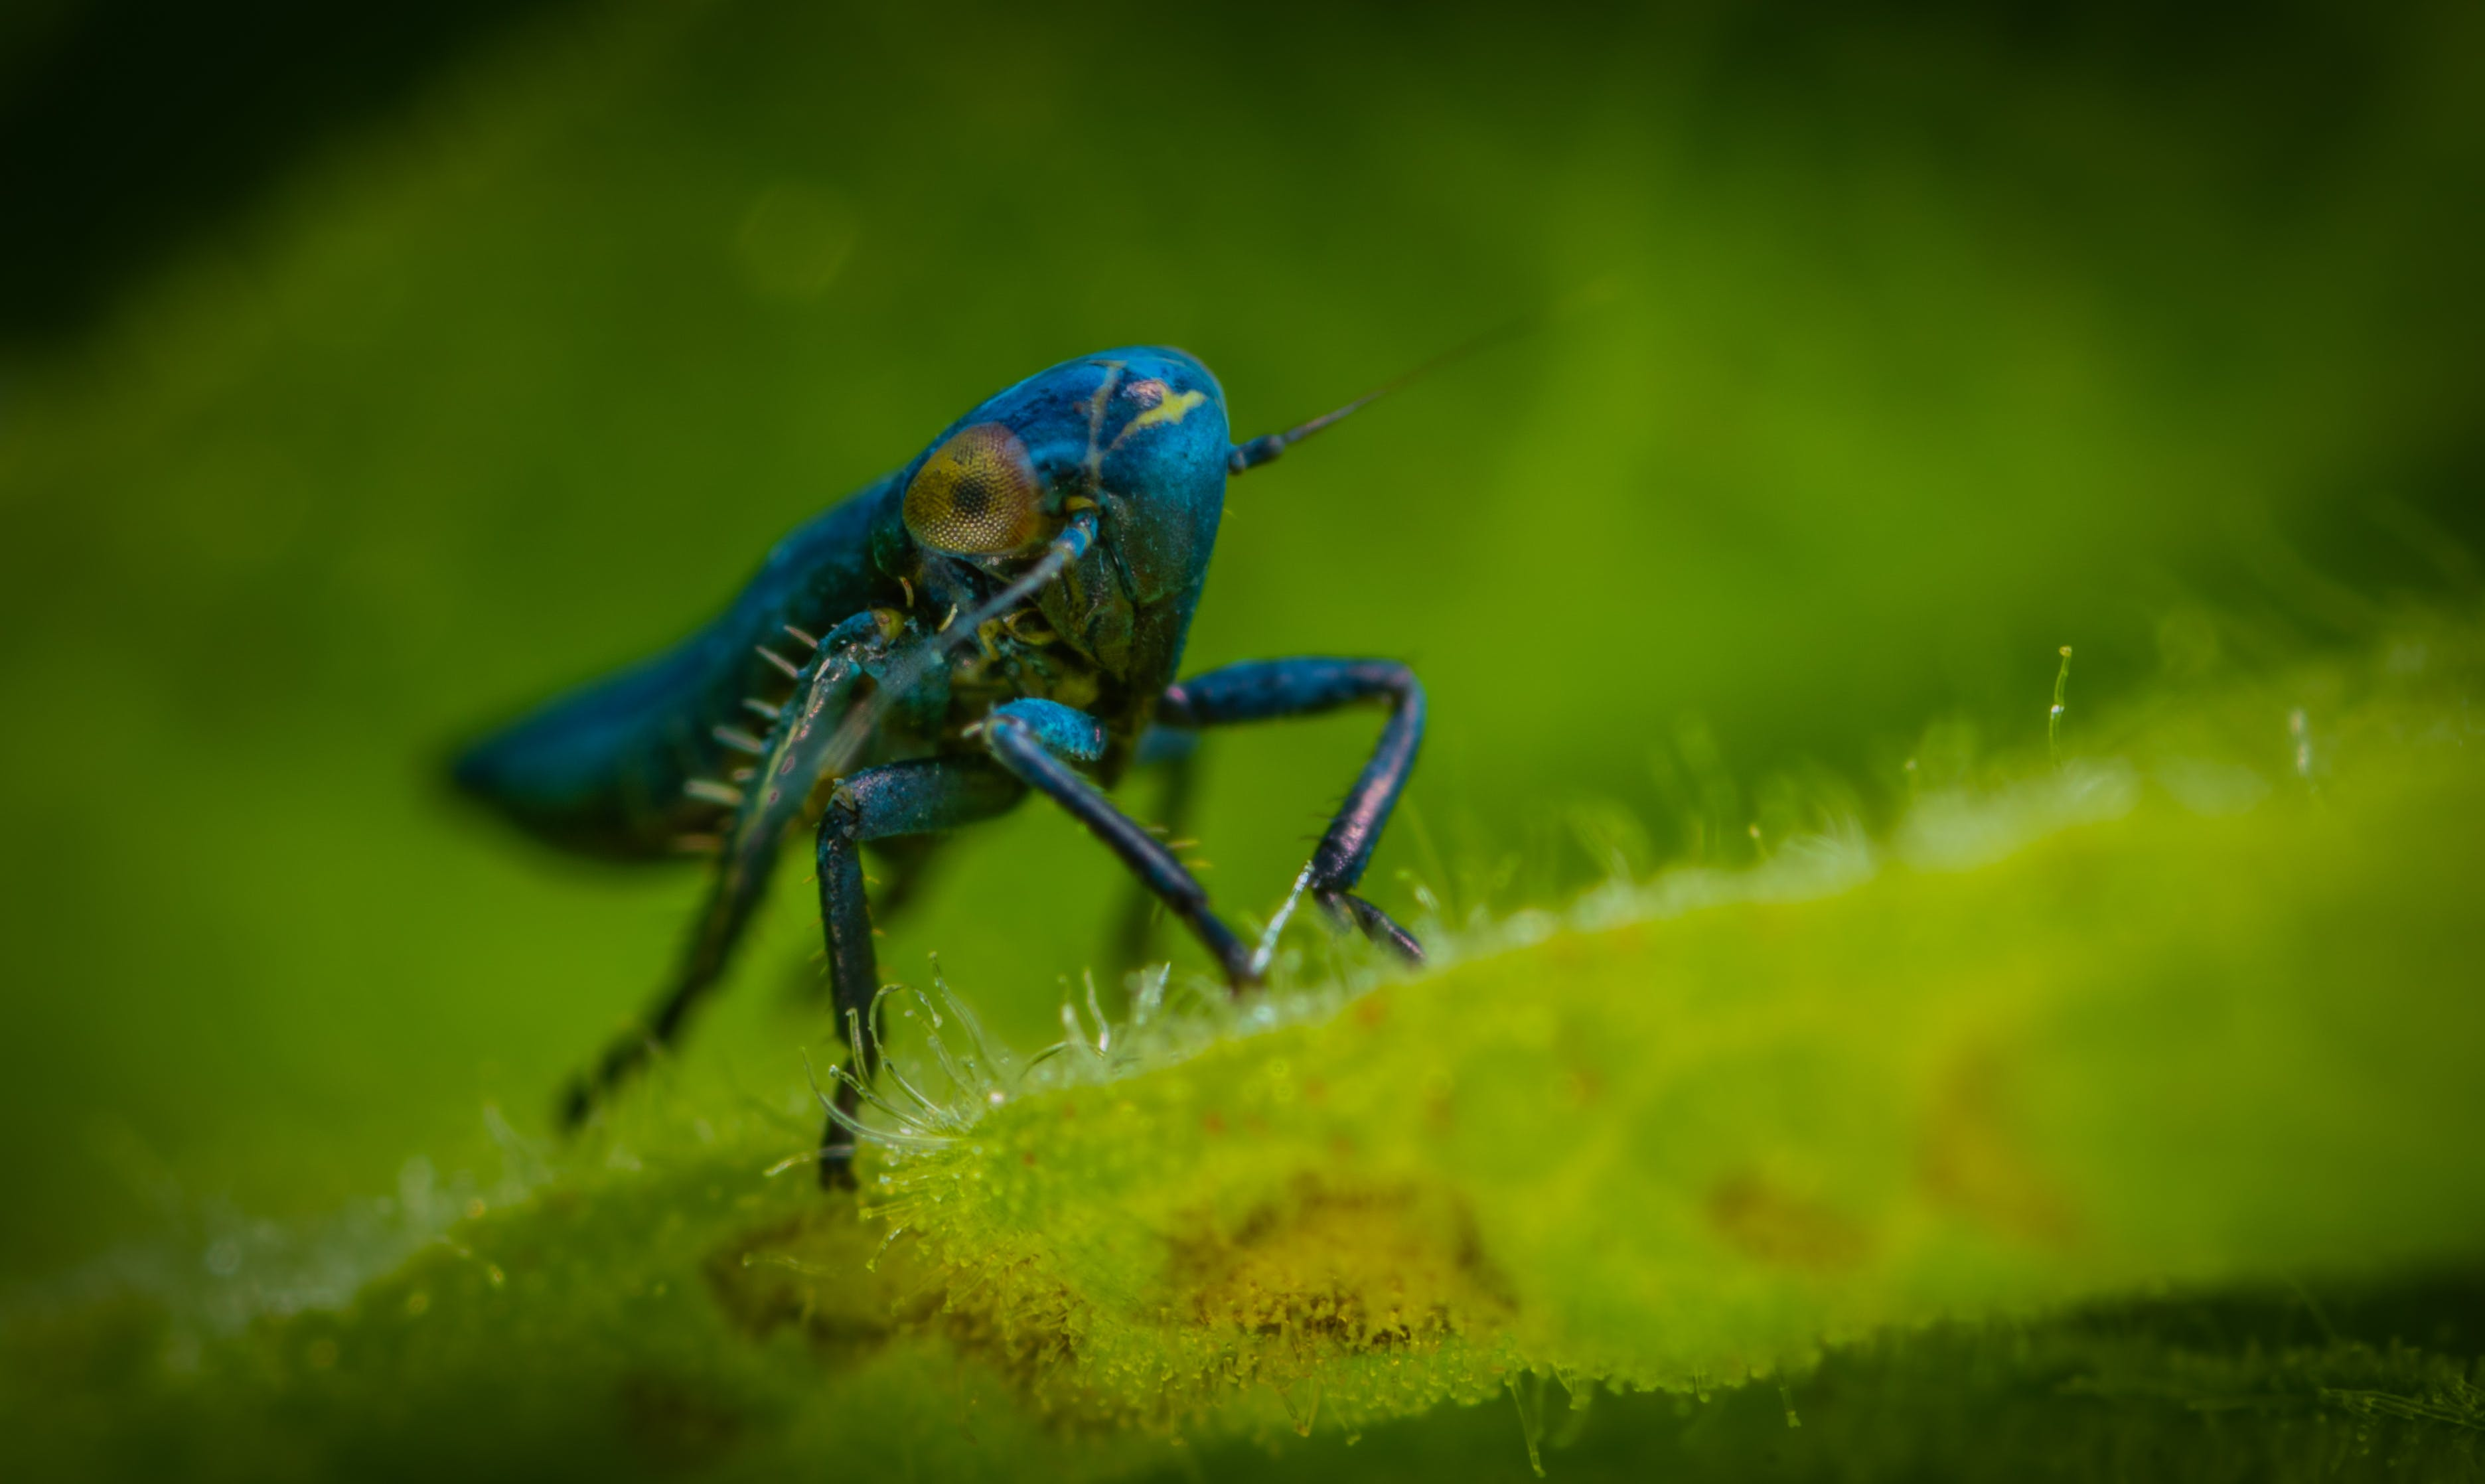 Blue Insect in Close-up Photography